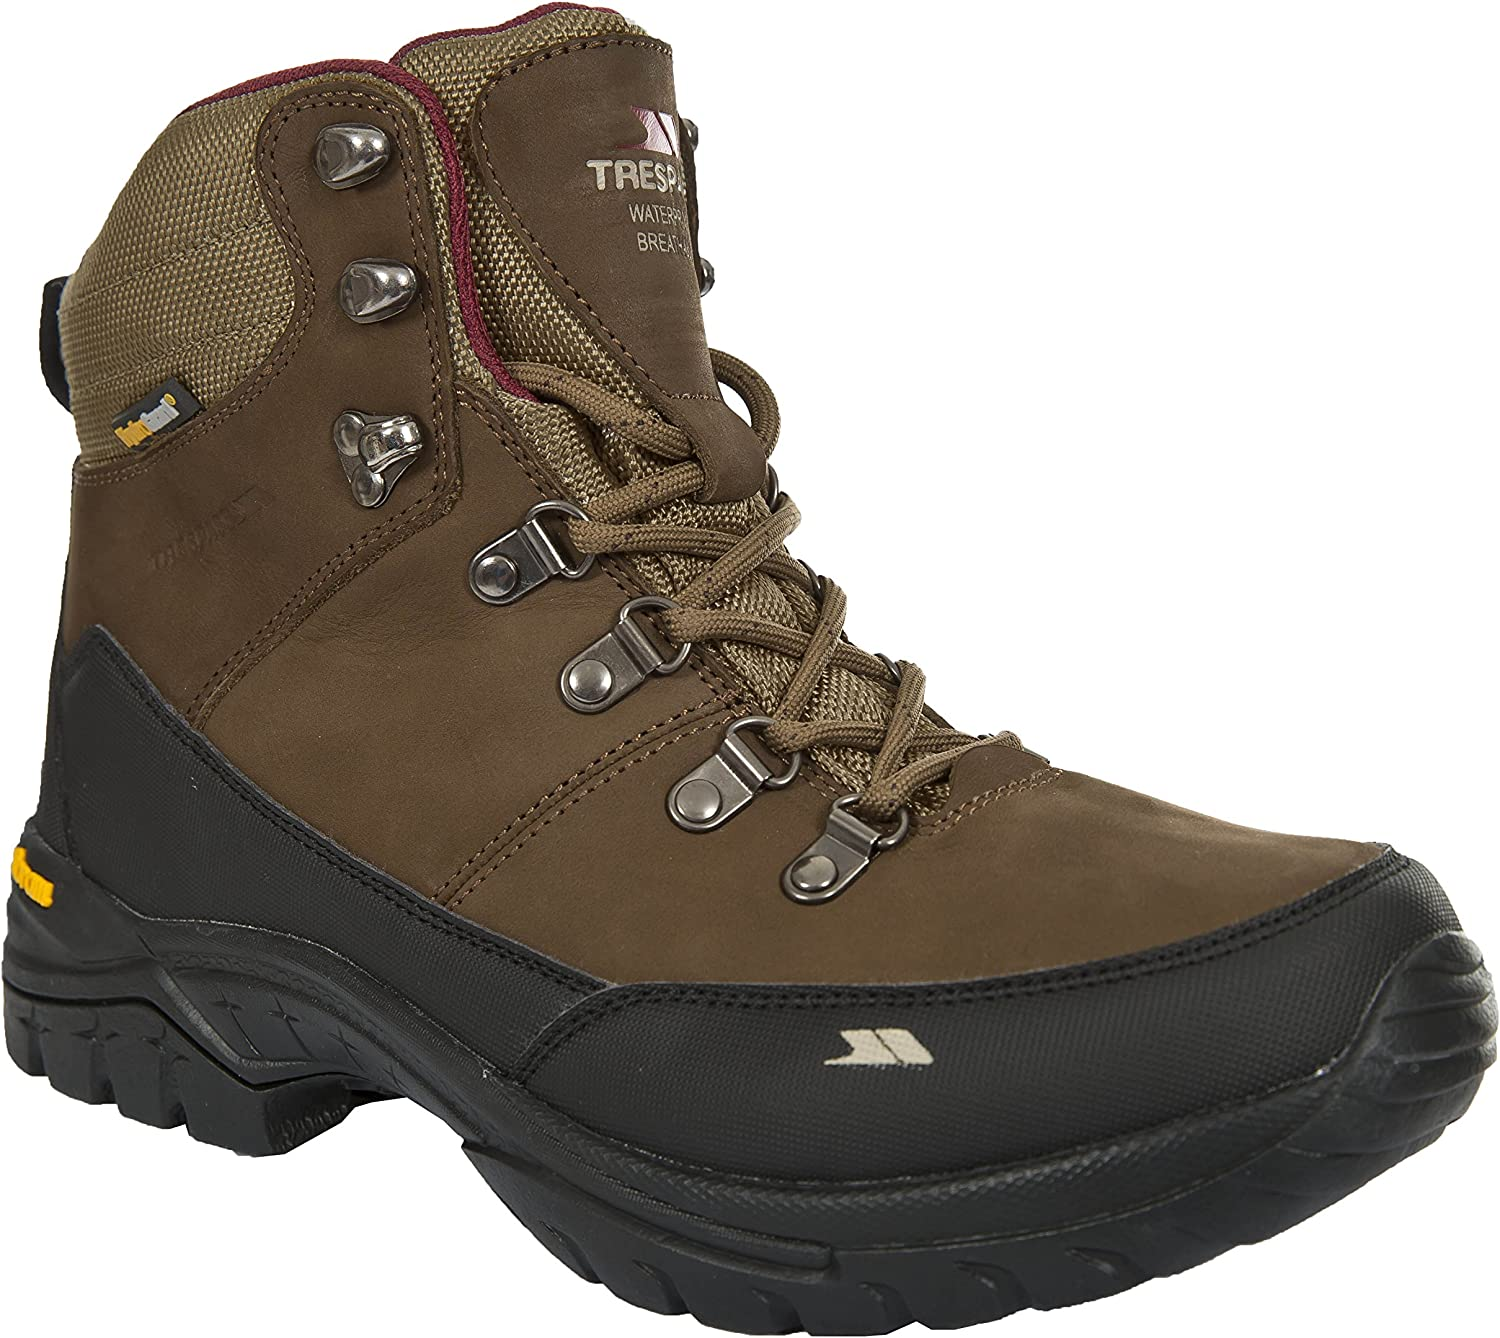 Trespass Womens Ladies Kenter Mid Cut Waterproof Hiking Boots